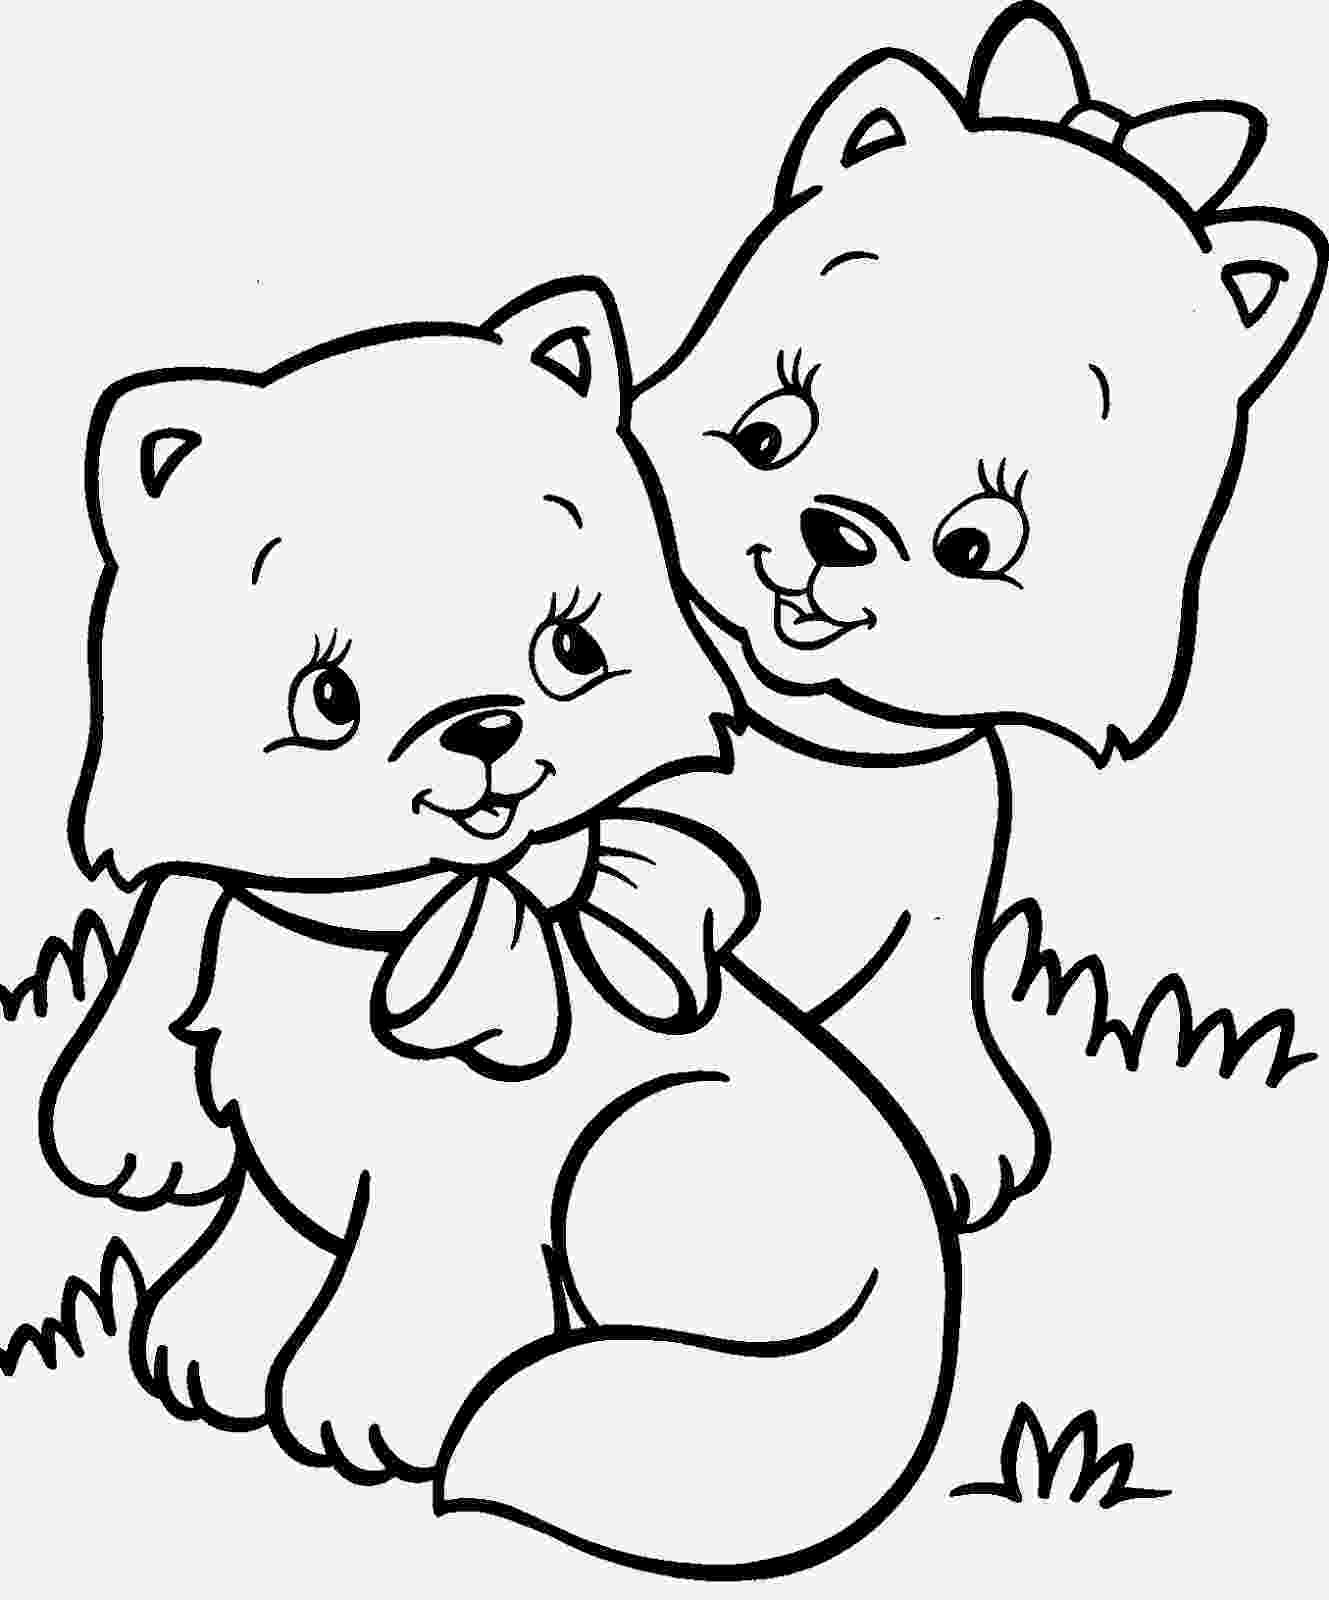 cat coloring sheets cat coloring pages for adults best coloring pages for kids coloring cat sheets